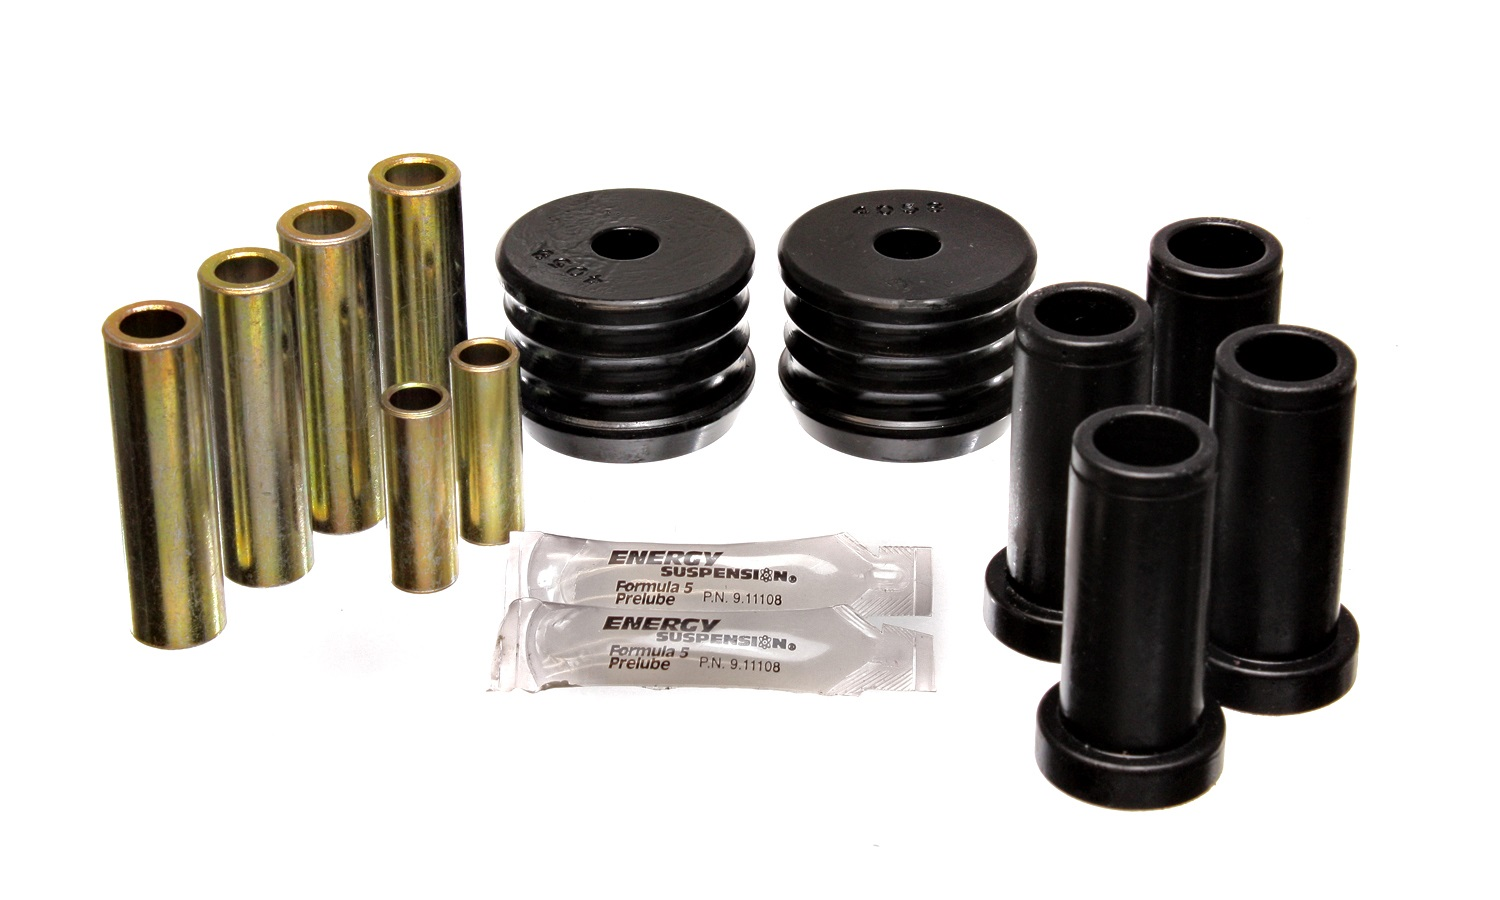 Energy Suspension 12.3102G Control Arm Bushing Set Fits 2002 2002ti 2002tii